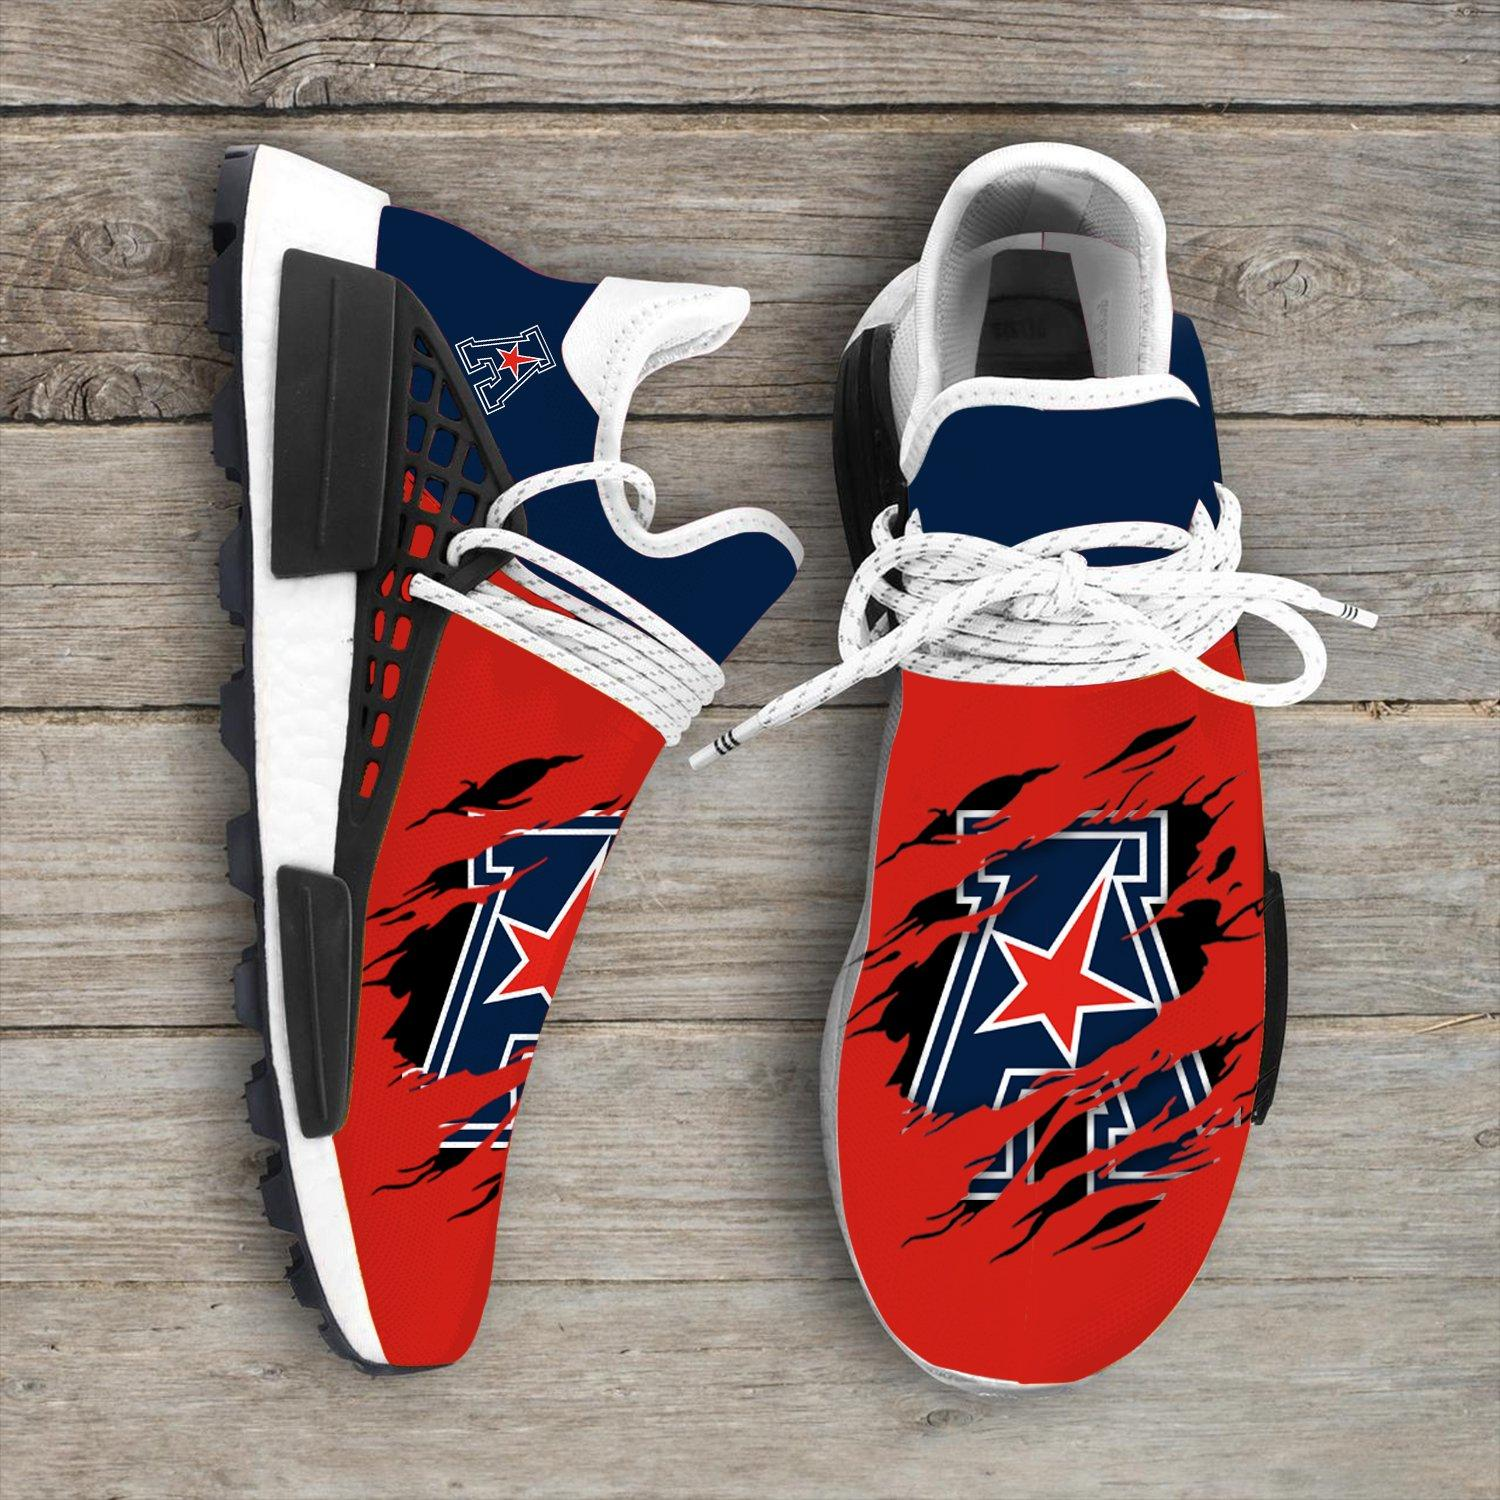 American Athletic Conference NCAA Sport Teams NMD Human Race Sneakers Shoes 2020